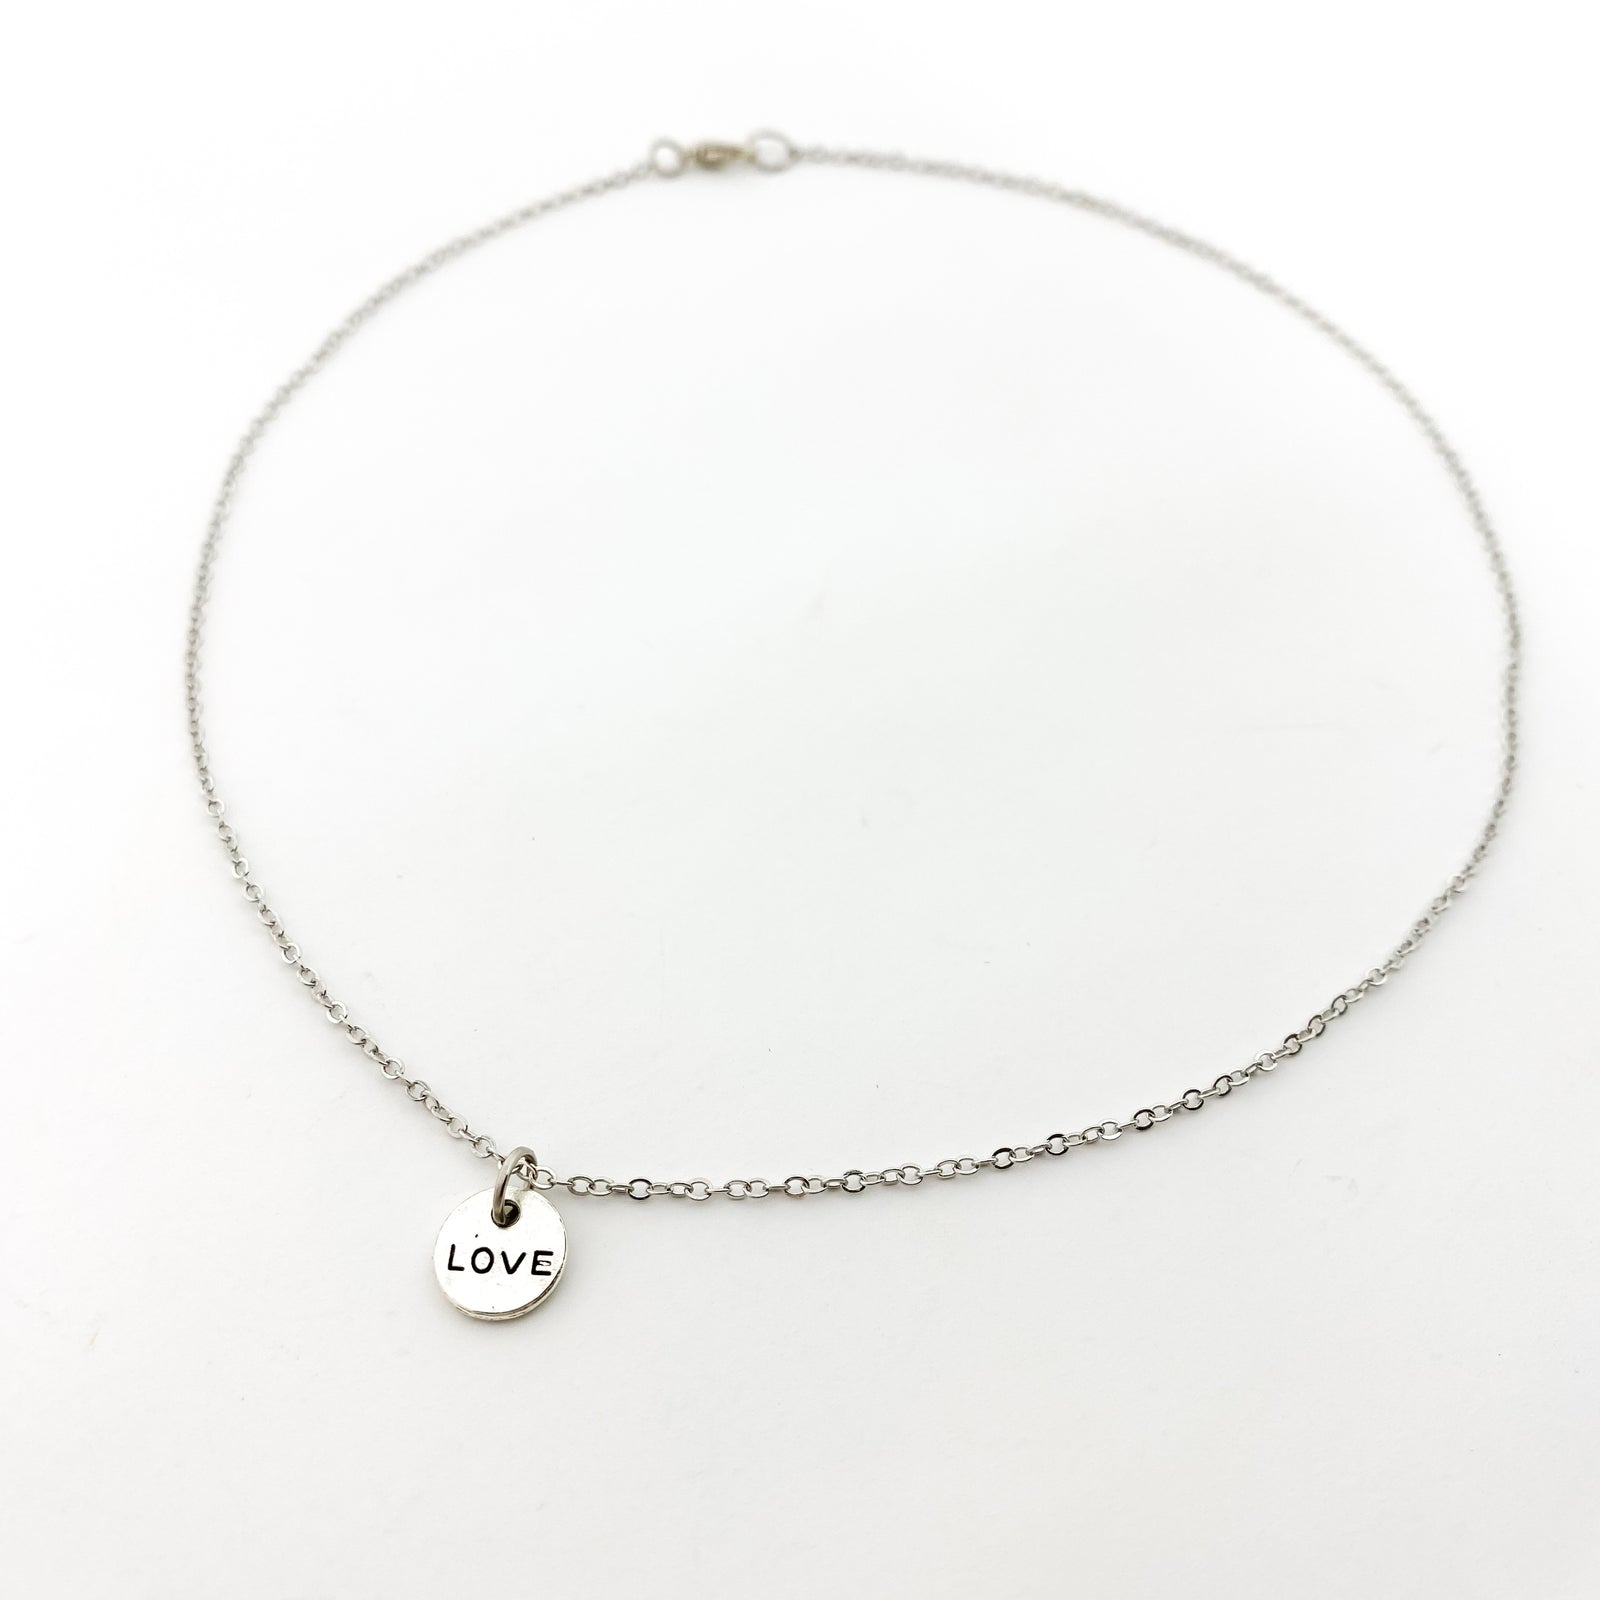 MINI DOUBLE-SIDED LOVE NECKLACE | SIVER